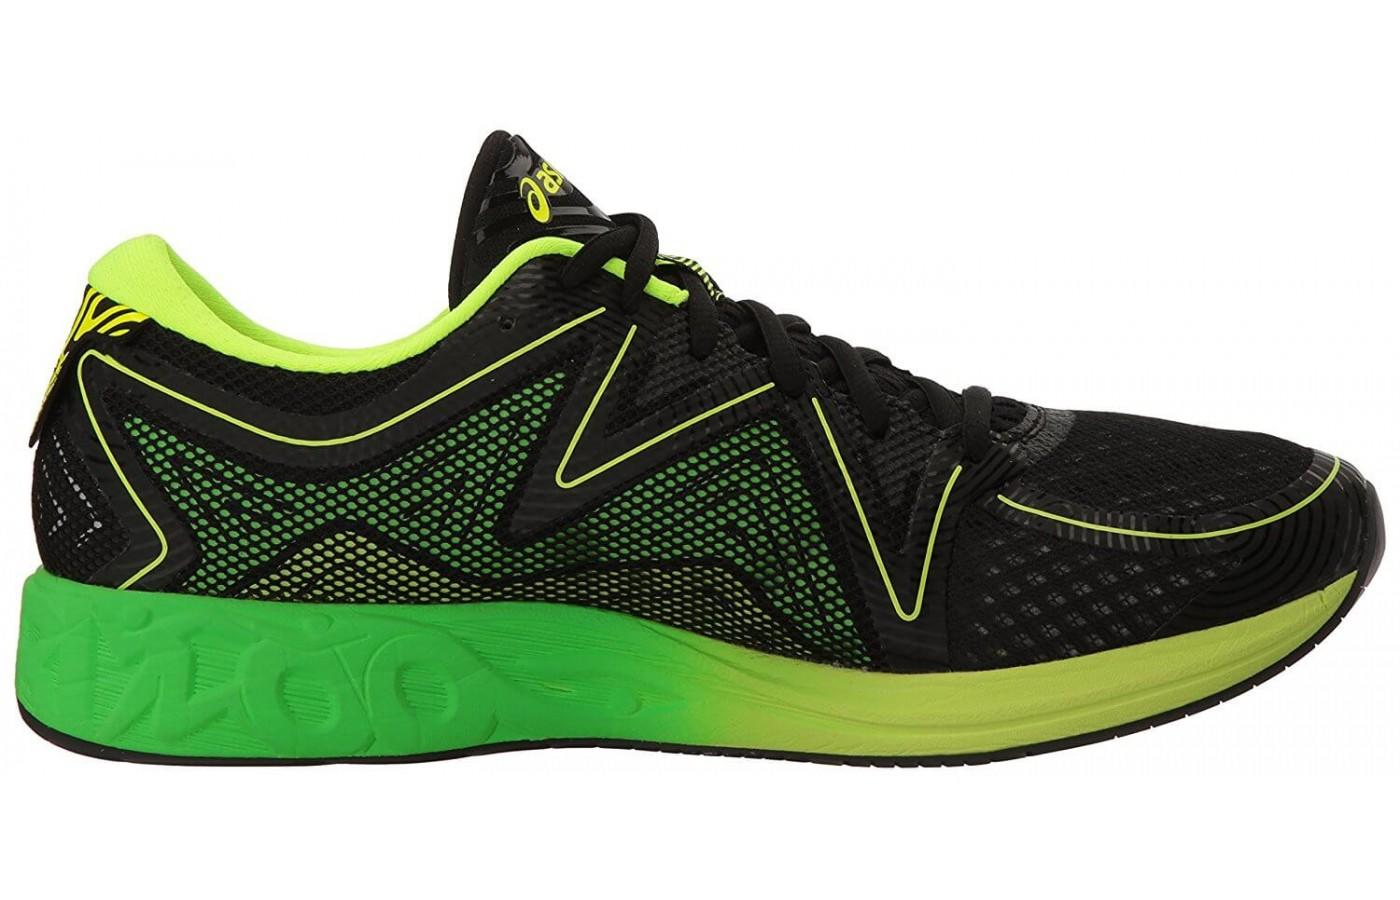 the Asics Noosa FF comes in a variety of color schemes that are vibrant and highly visible